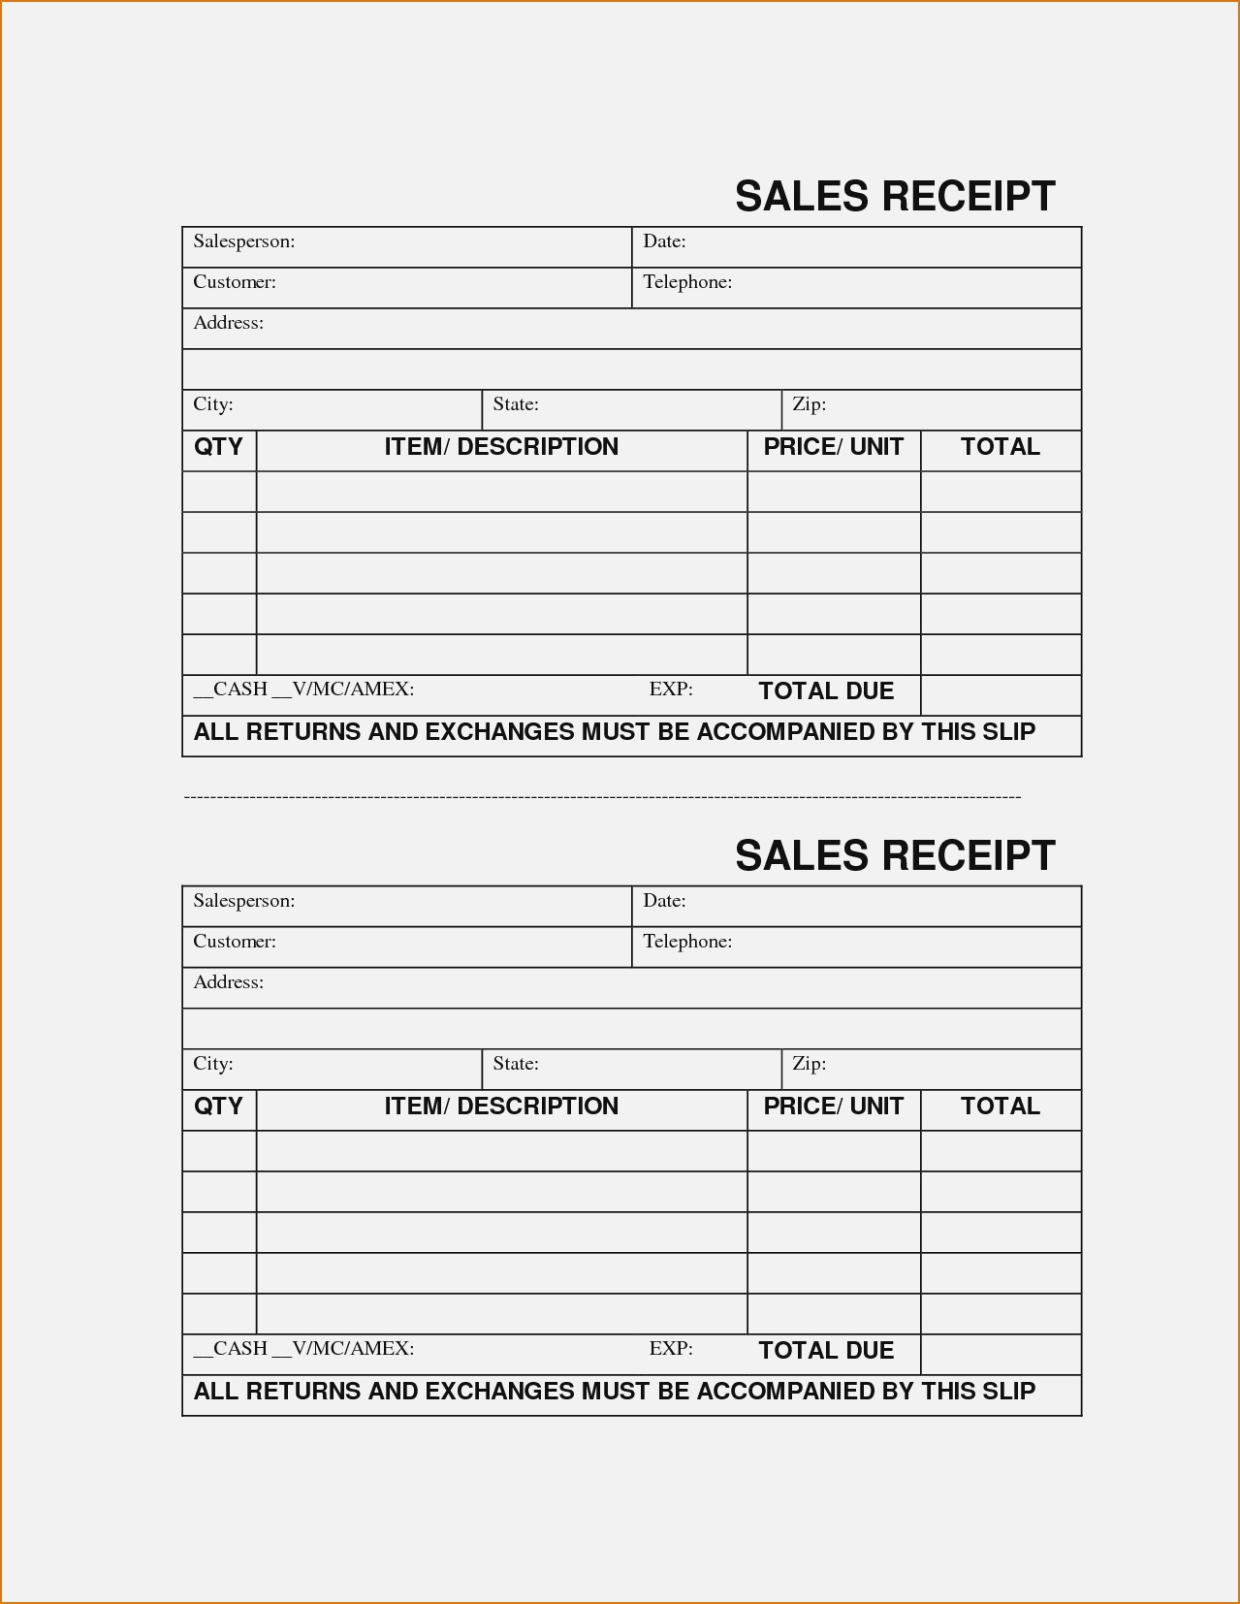 Create Printable Forms Online Sample Sales Receipt Template Lovely - Free Printable Sales Receipts Online